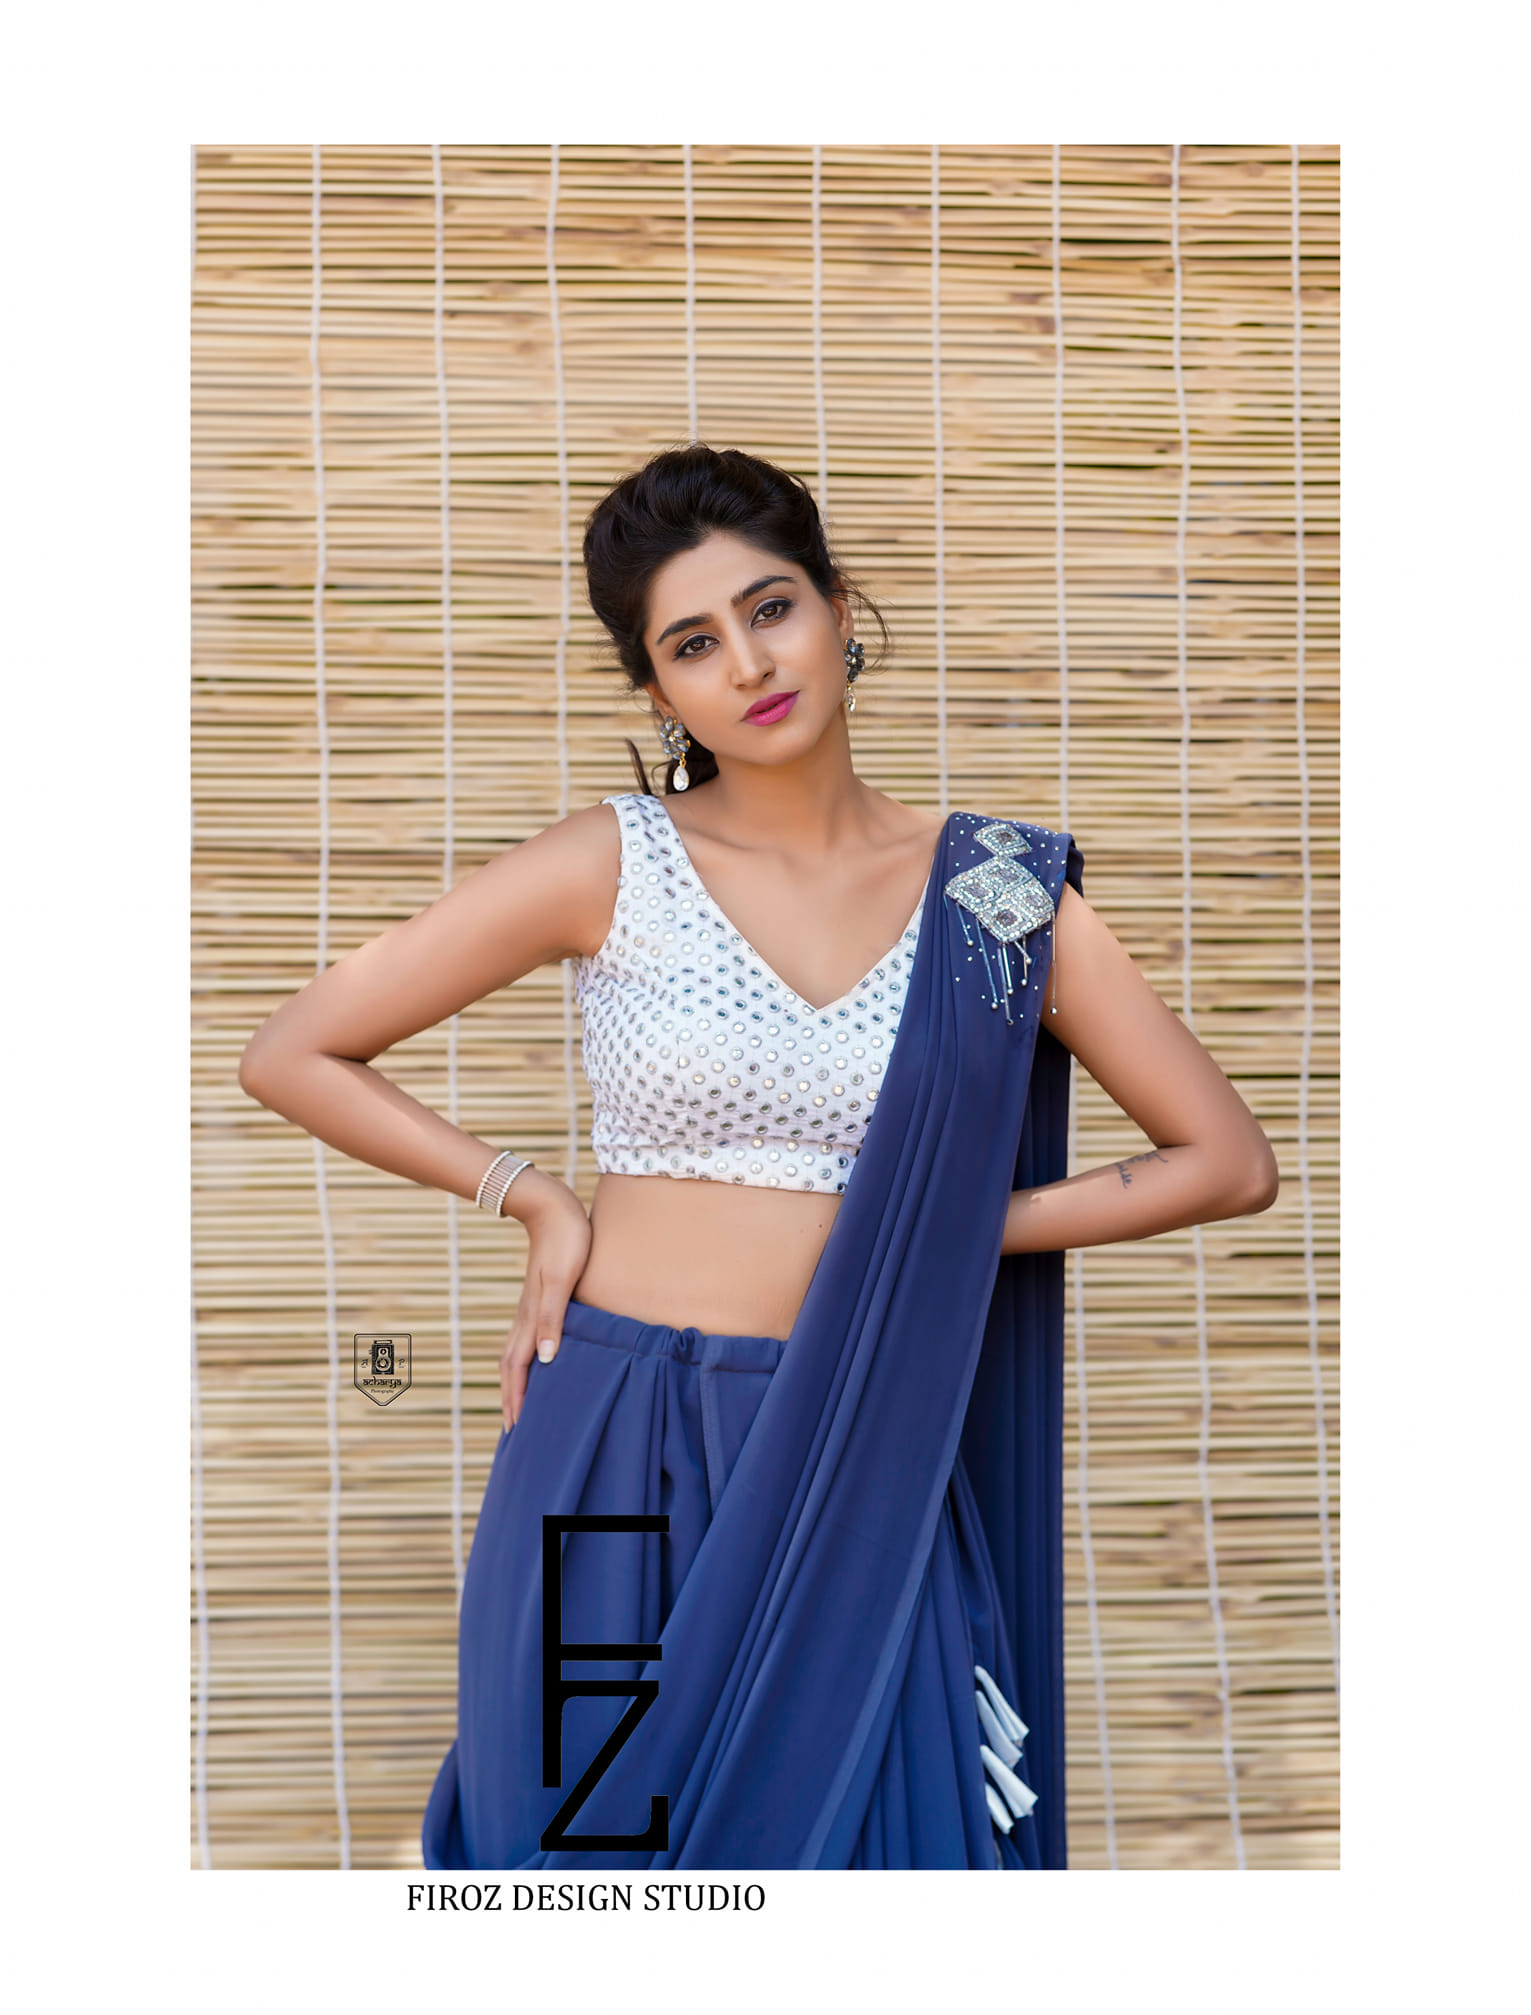 Glamorous Varshini looked beautiful in  Firoz Design Studio outfit. They can customise the colour and size as per your requirements To contact  : 9505340228 / 9553480491. 2021-04-26